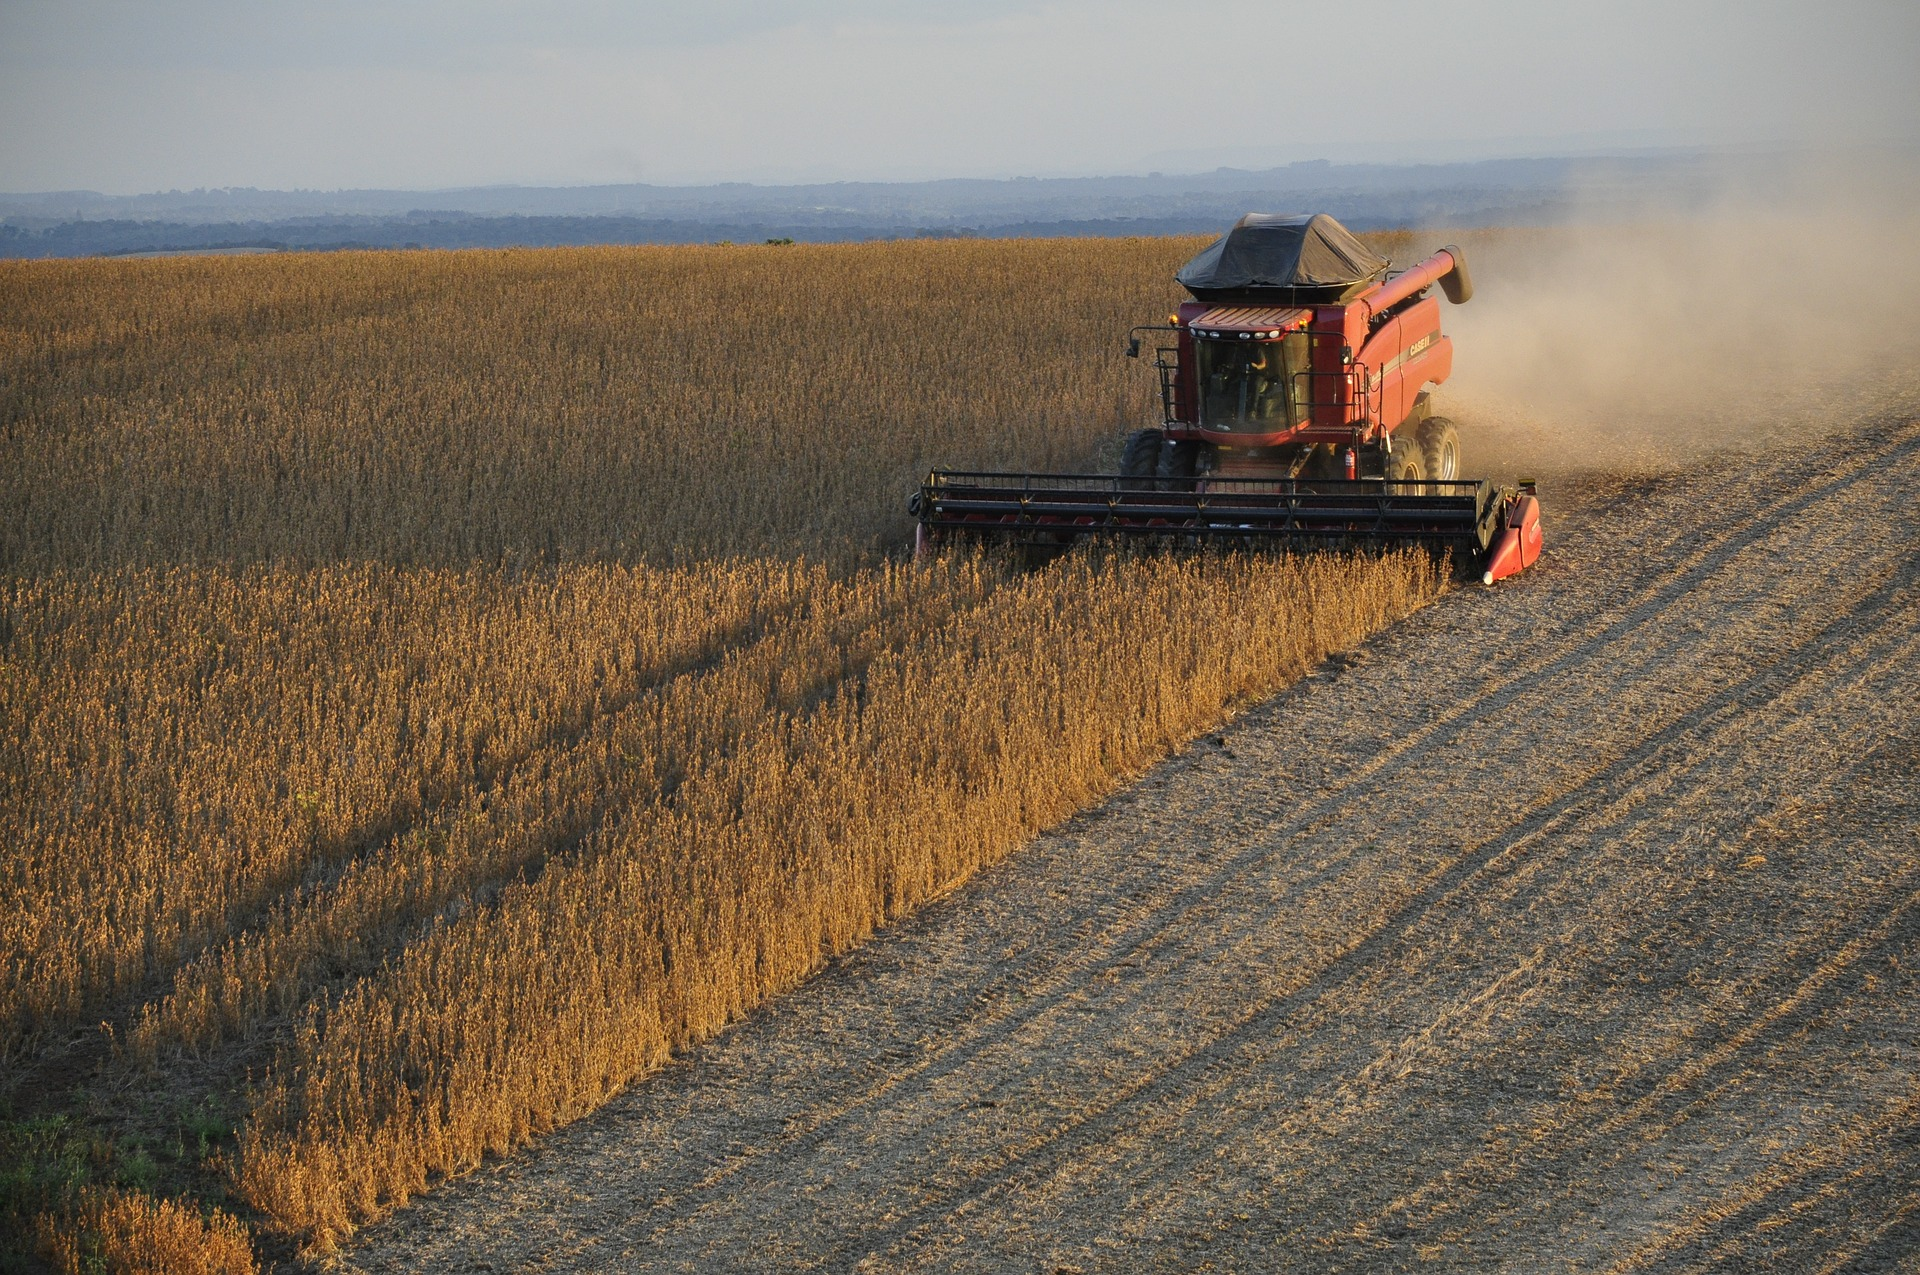 Soy being harvested by a big machine